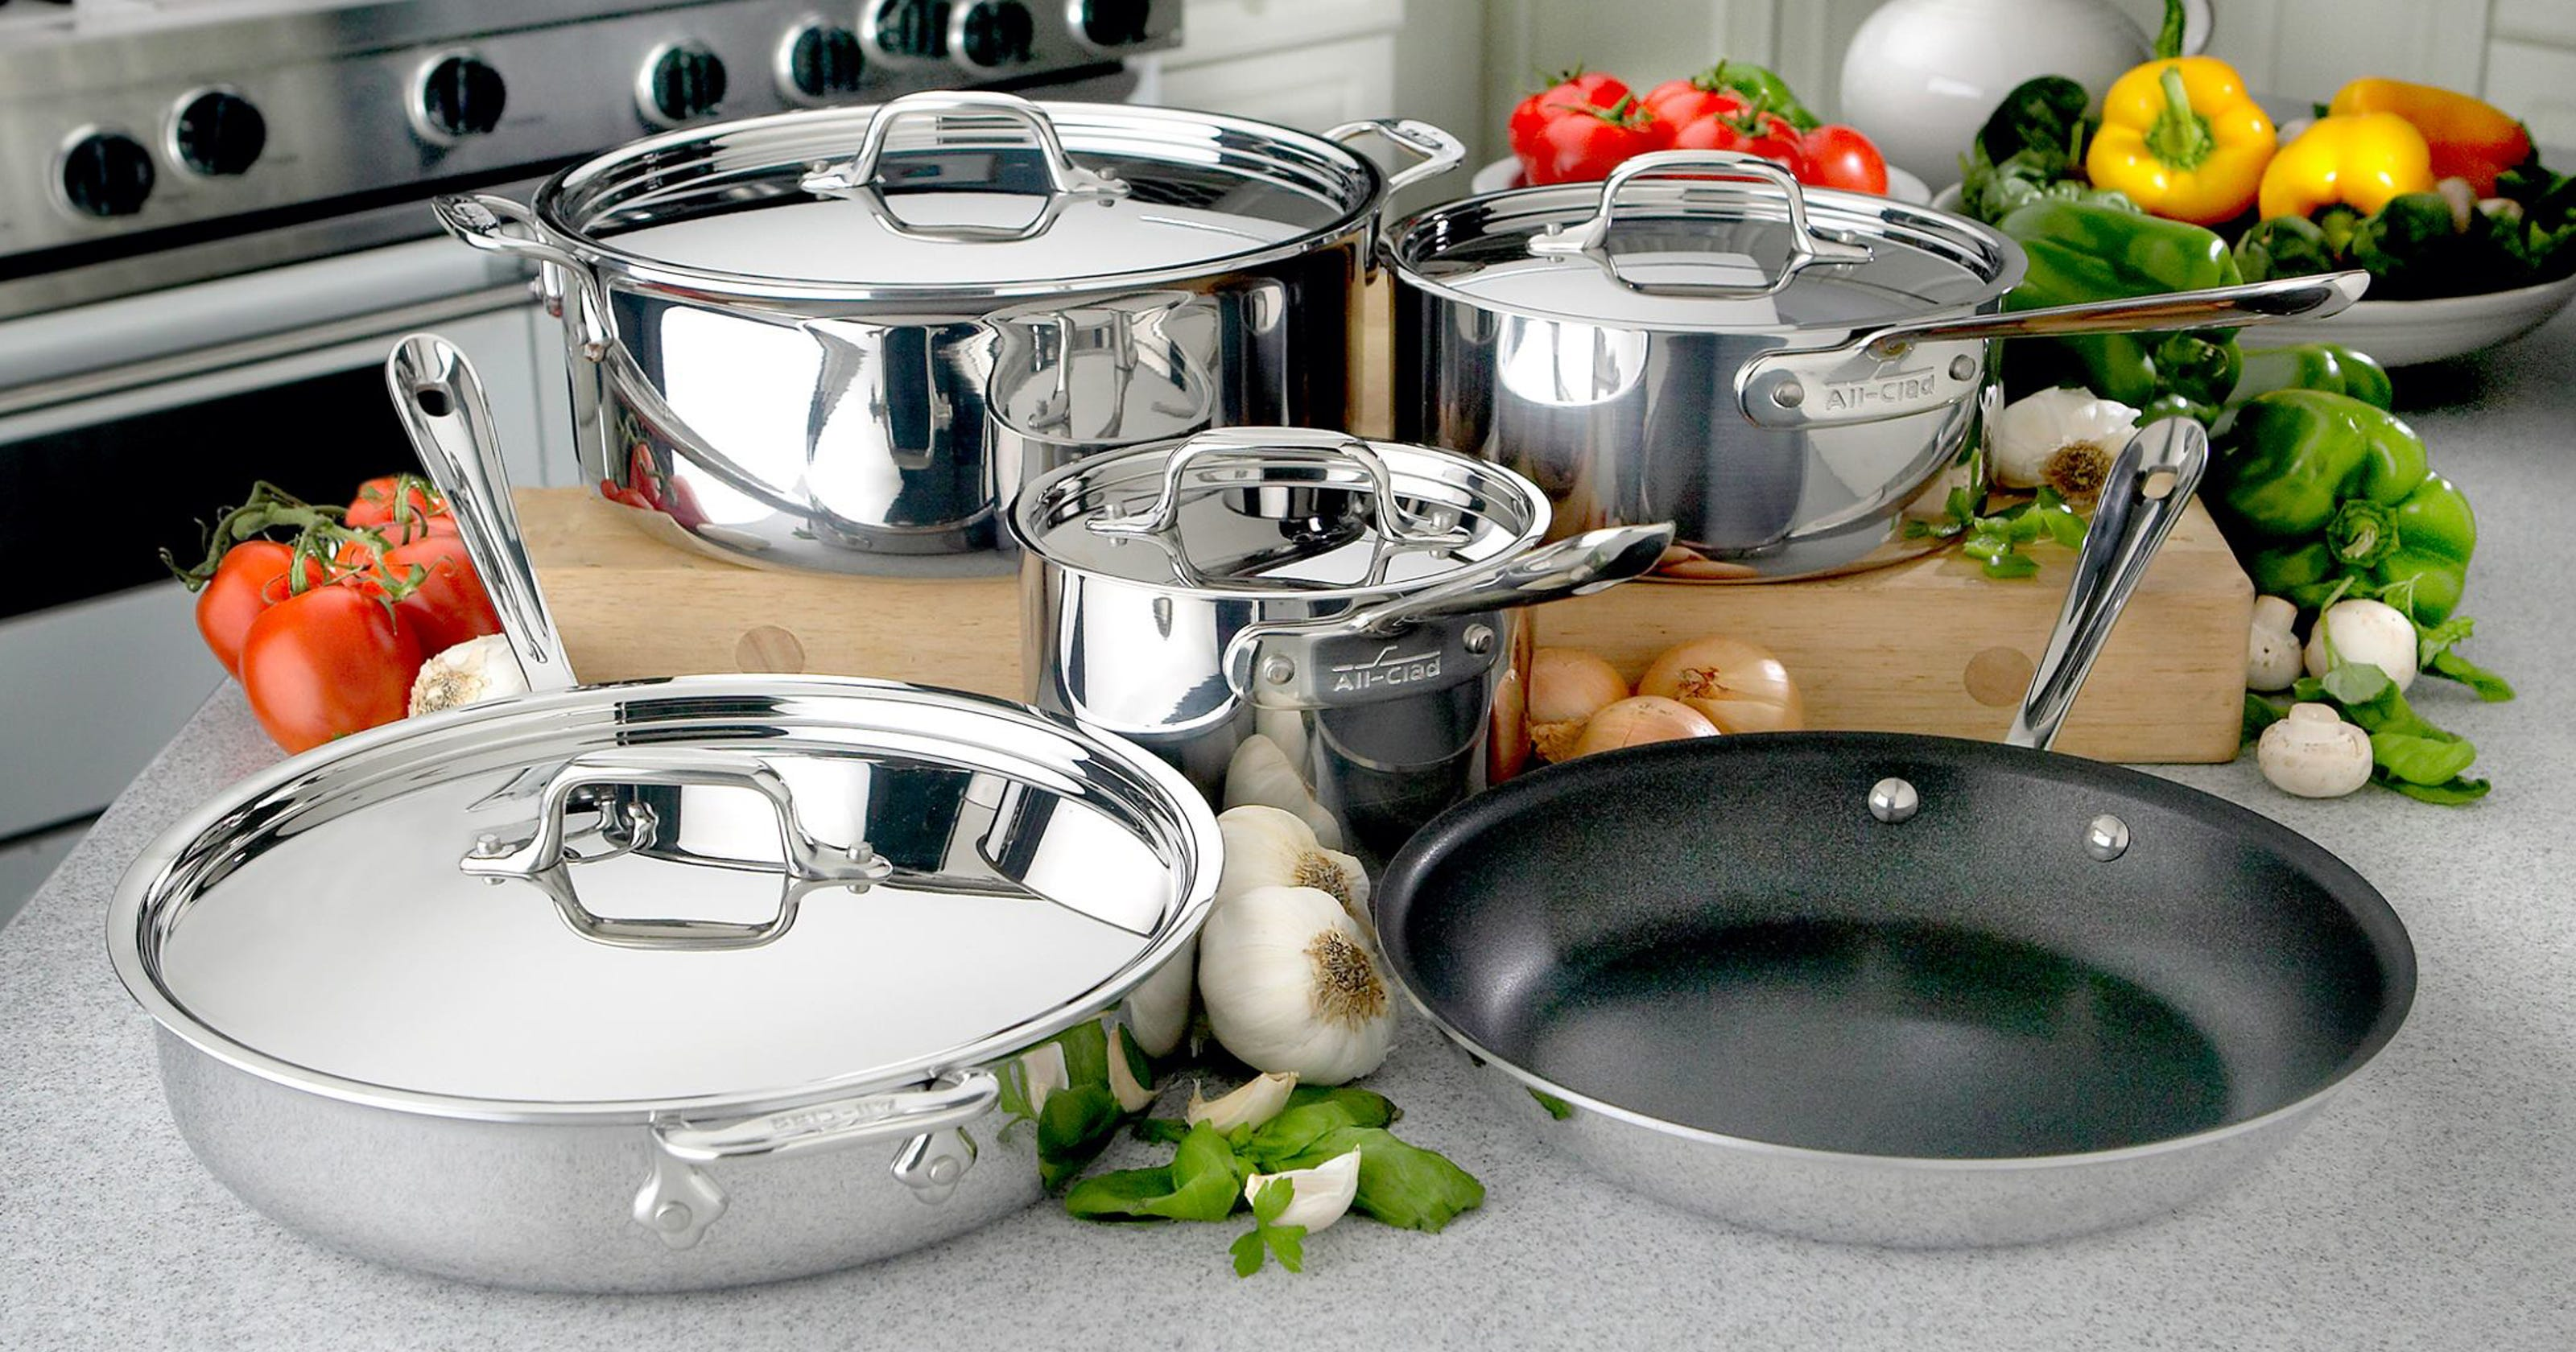 Zepter cookware prices for sale